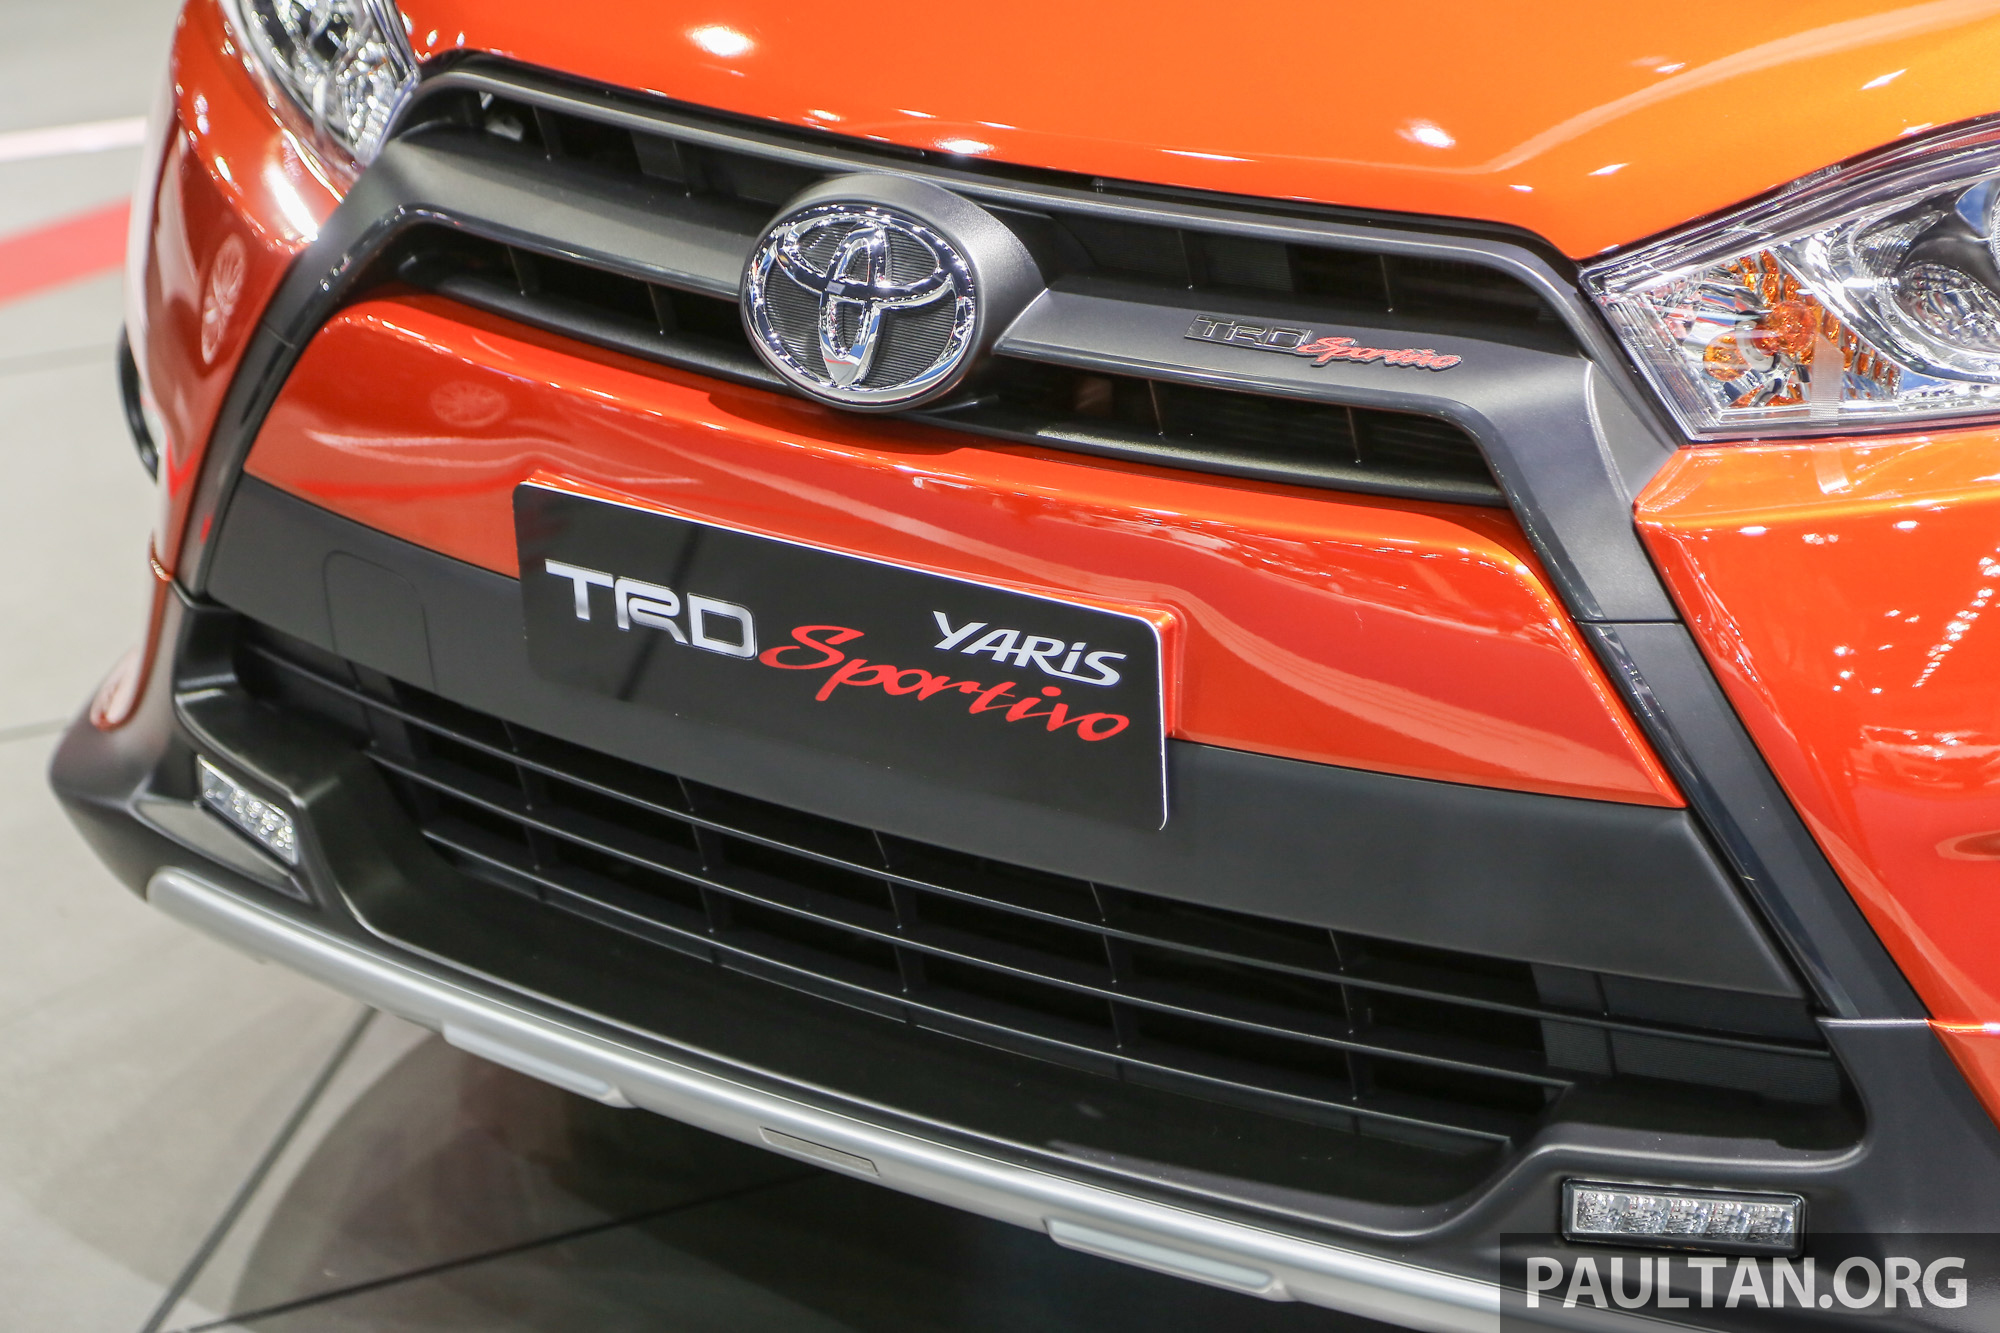 toyota yaris trd sportivo specs spesifikasi all new kijang innova 2017 gallery at bangkok 2016 paul